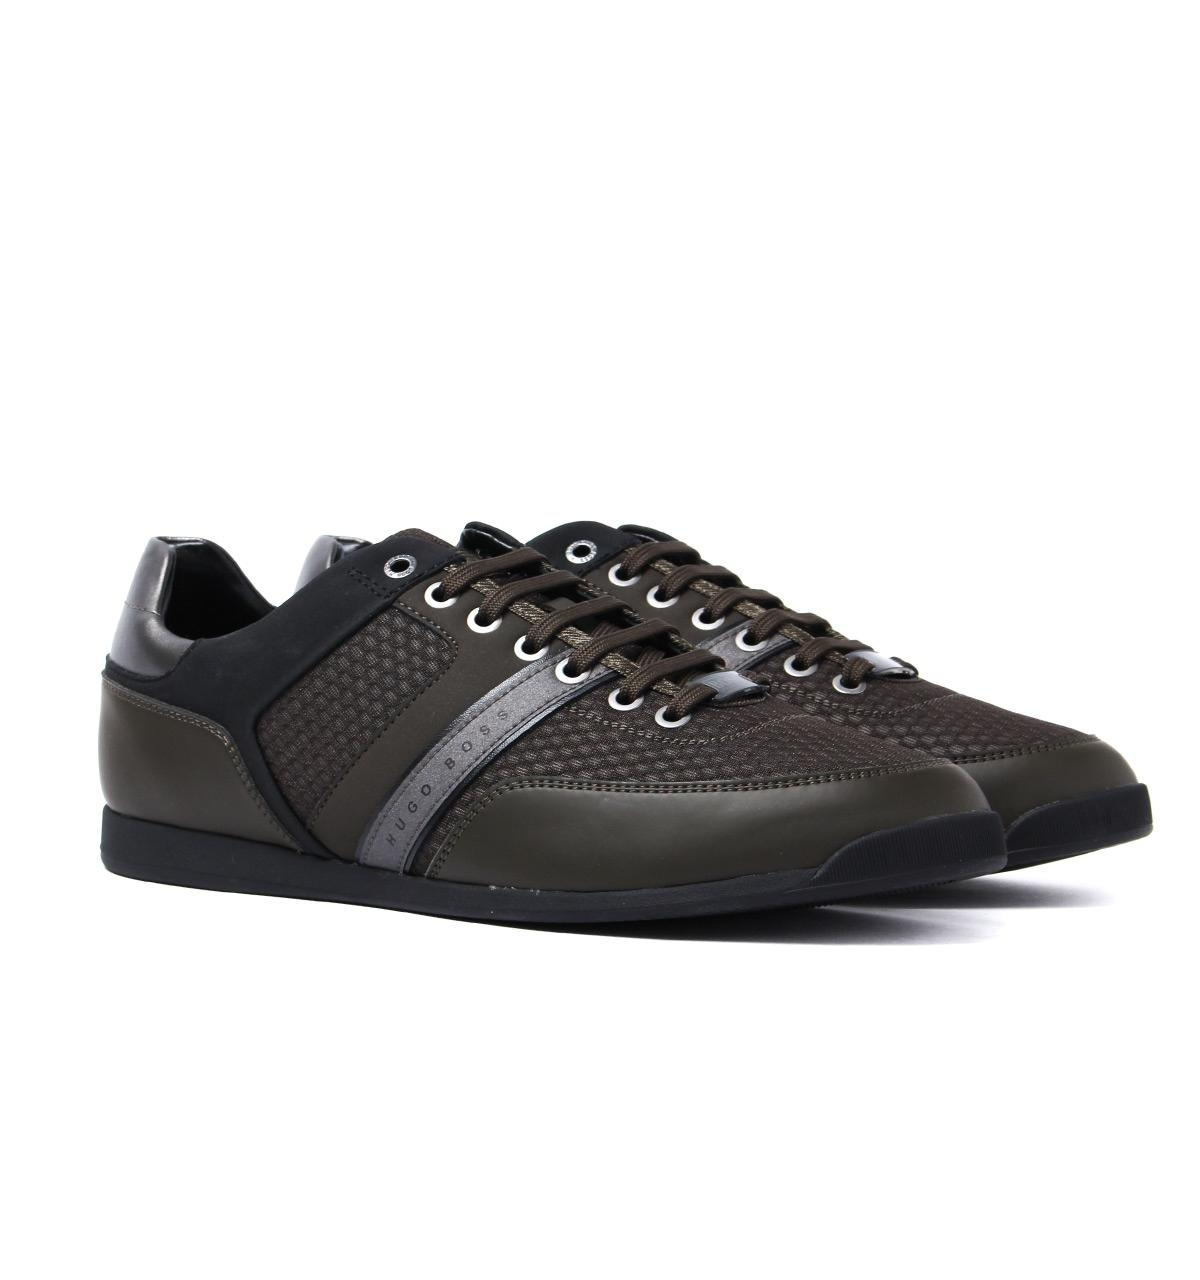 Mens Maze_Lowp_air Trainers, Black HUGO BOSS